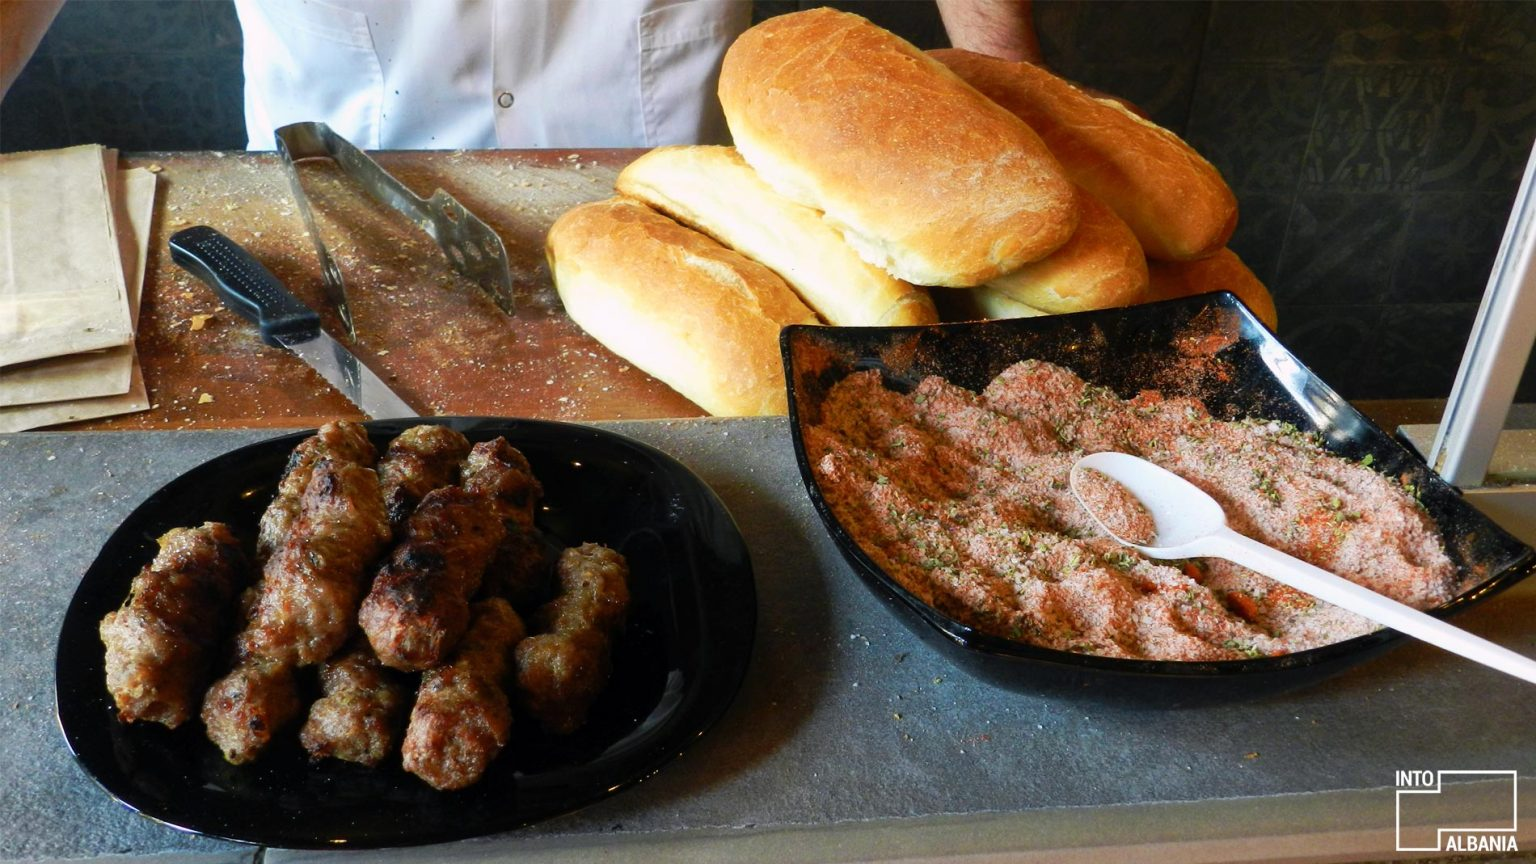 Bread with meatballs at Met Kodra's shop. Photo by IntoAlbania.